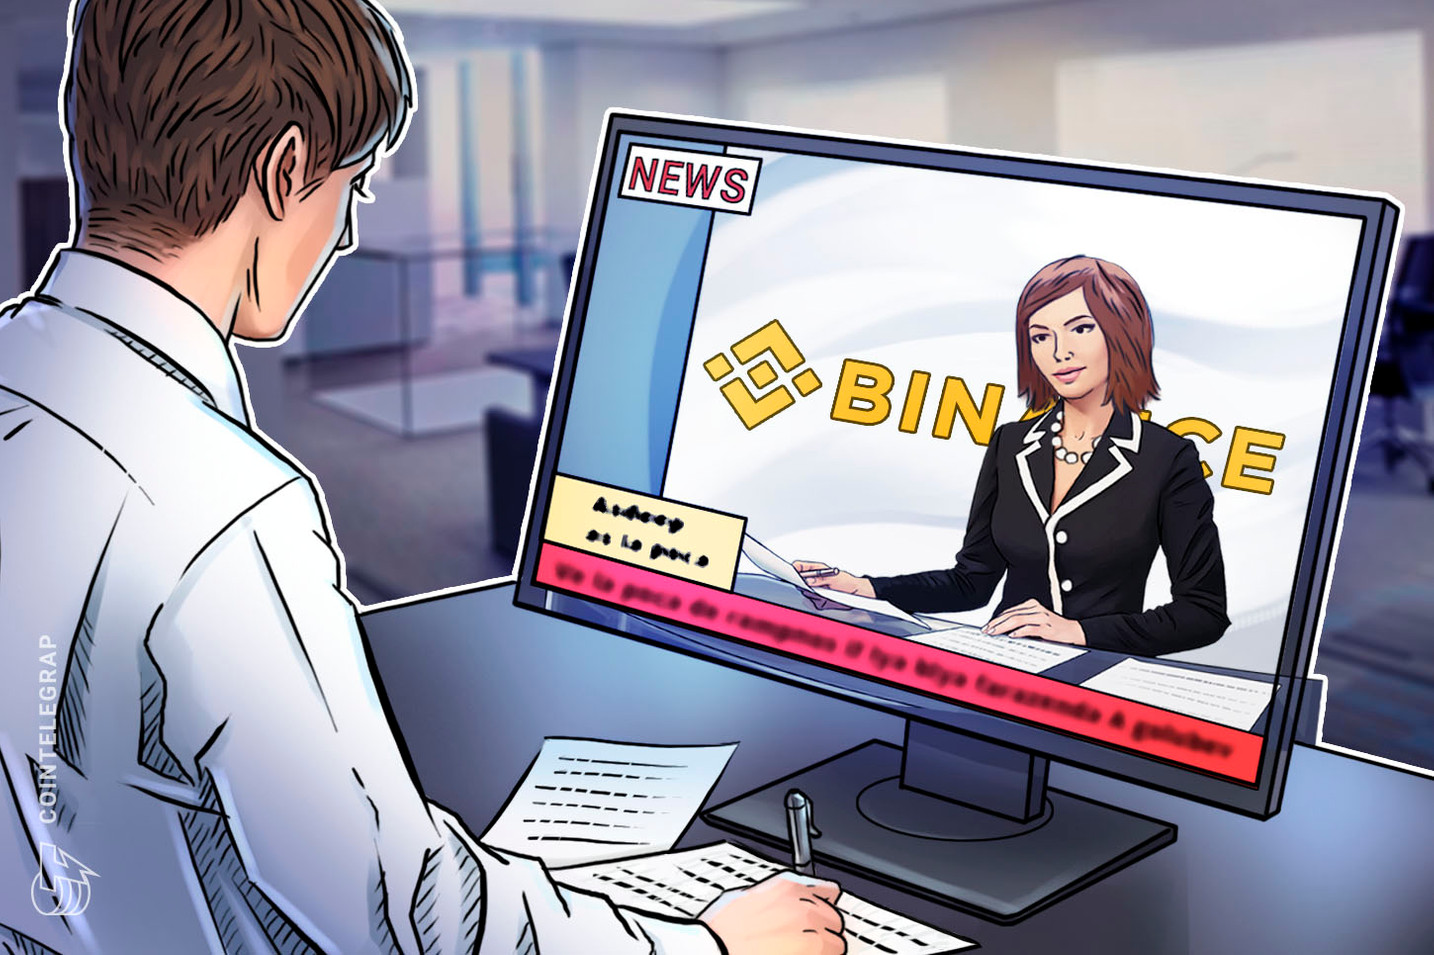 Binance CEO Publishes Security Incident Update, Apologizes for Blockchain Re-Org Comment